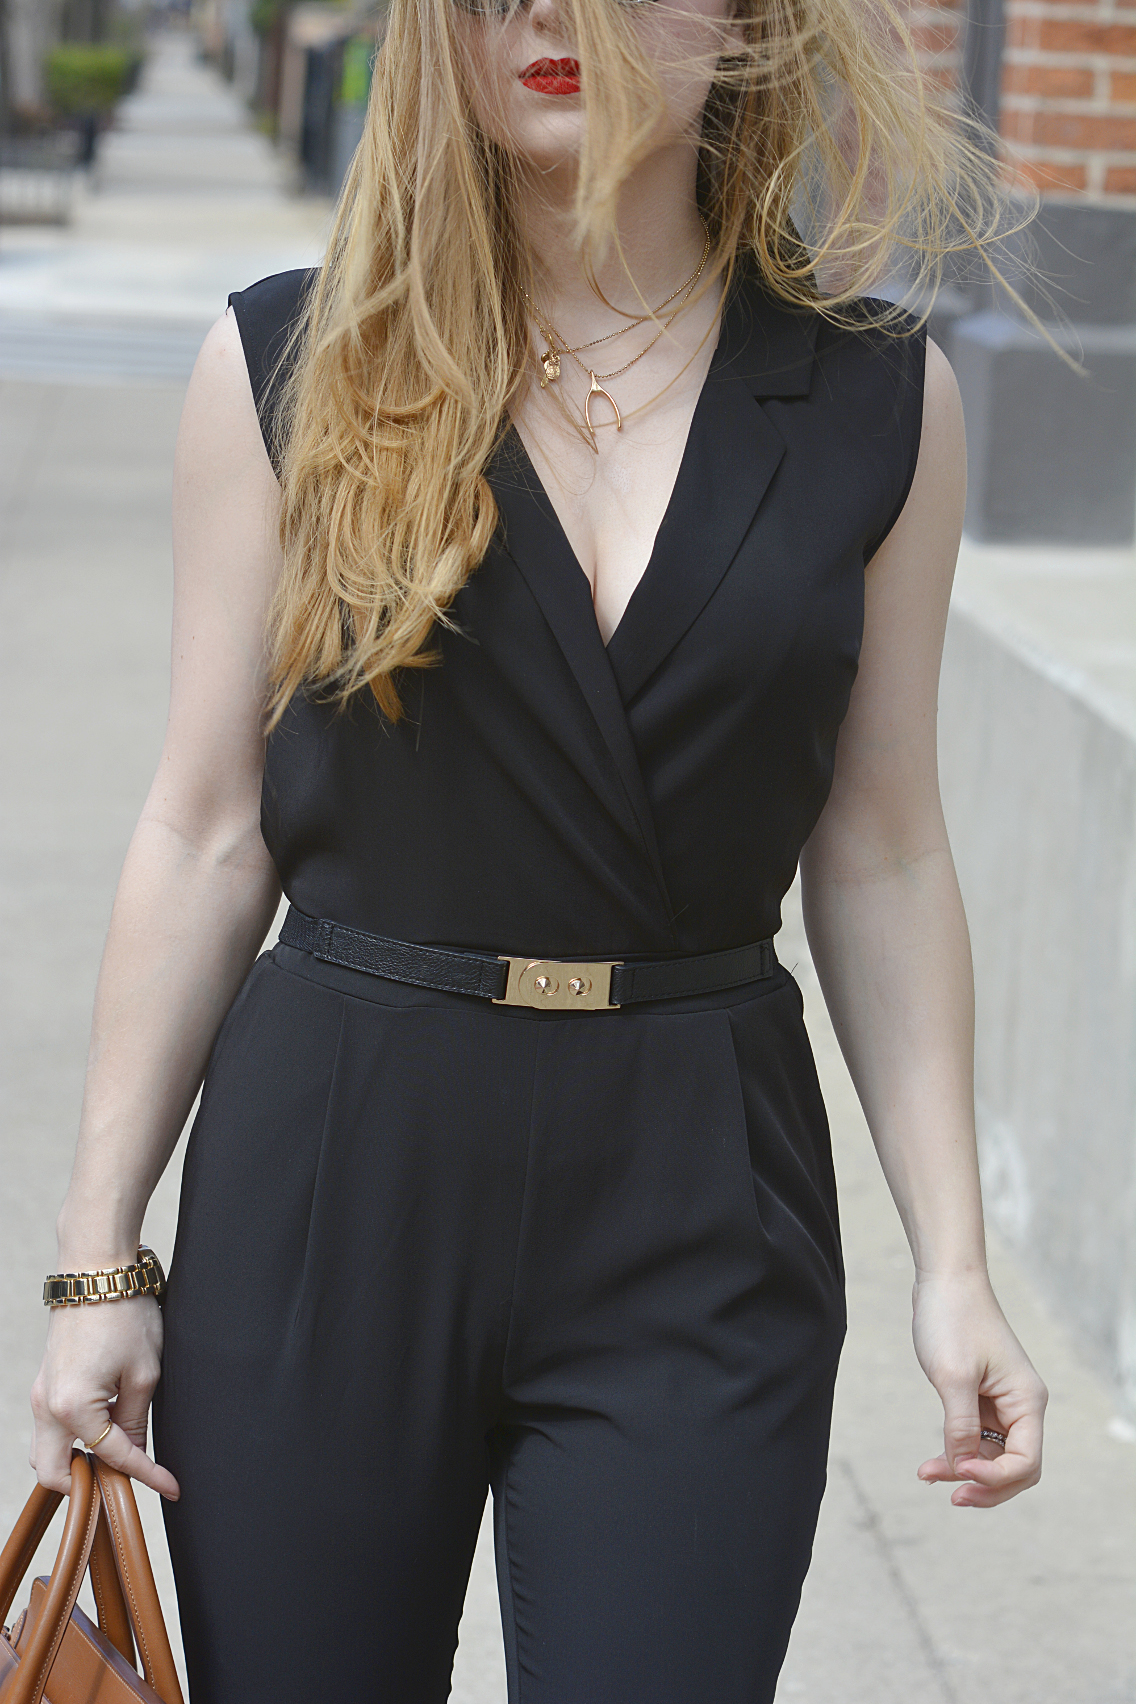 Black Jumpsuit with Red Lips 4